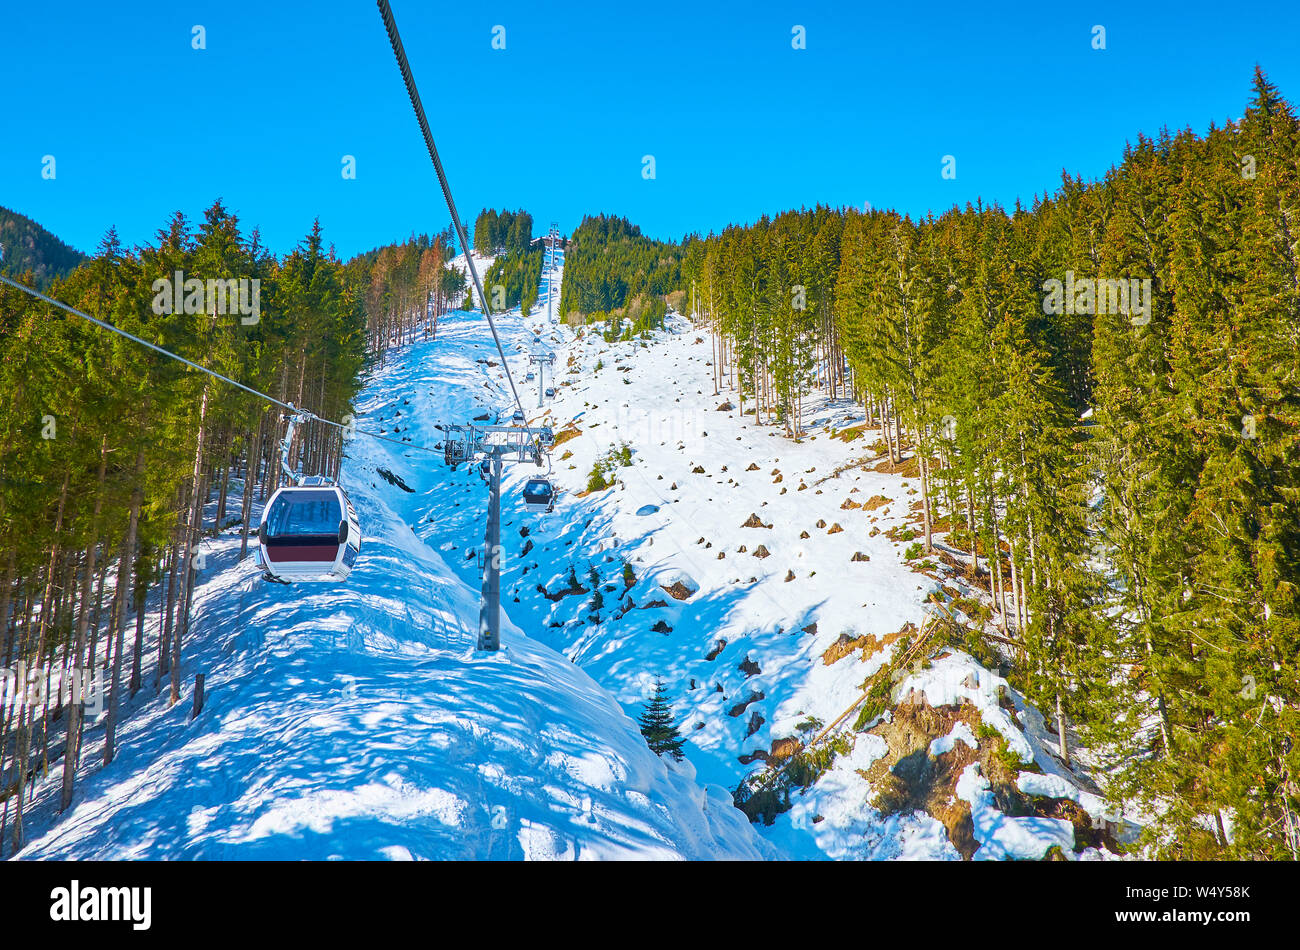 The snowy slope of Schmitten mount with lush pine forests and riding gondolas of Trassxpress cableway, Zell am See, Austria Stock Photo